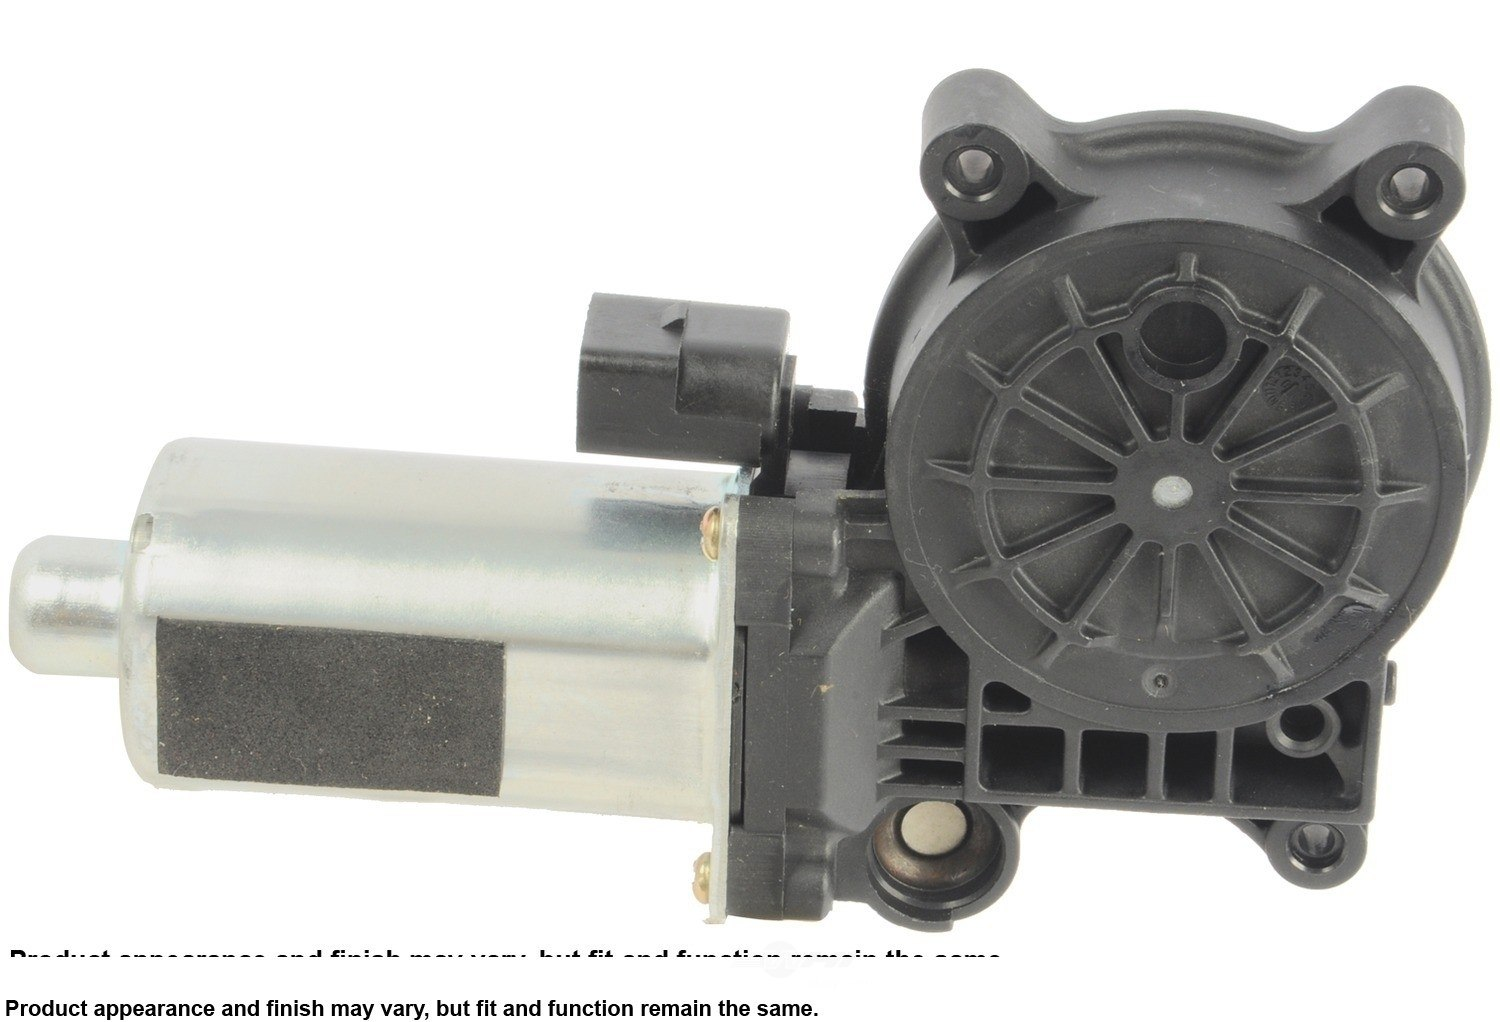 CARDONE NEW - Window Lift Motor (Front Right) - A1S 82-3006